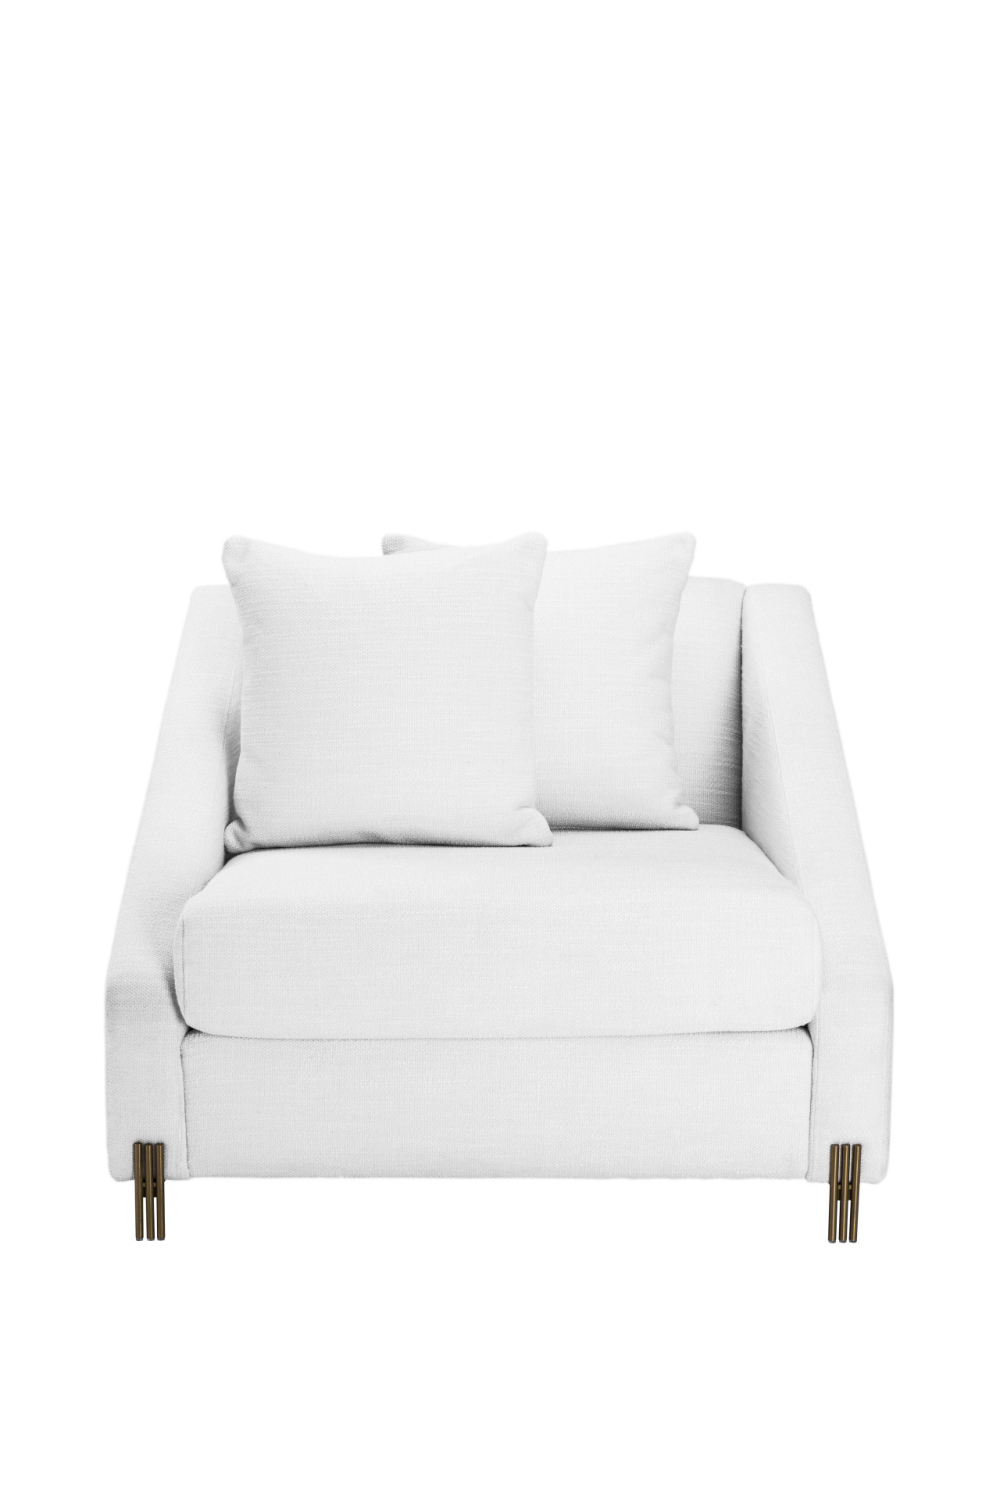 White Modern Tuxedo Chair | Eichholtz Candice | OROA Modern Furniture